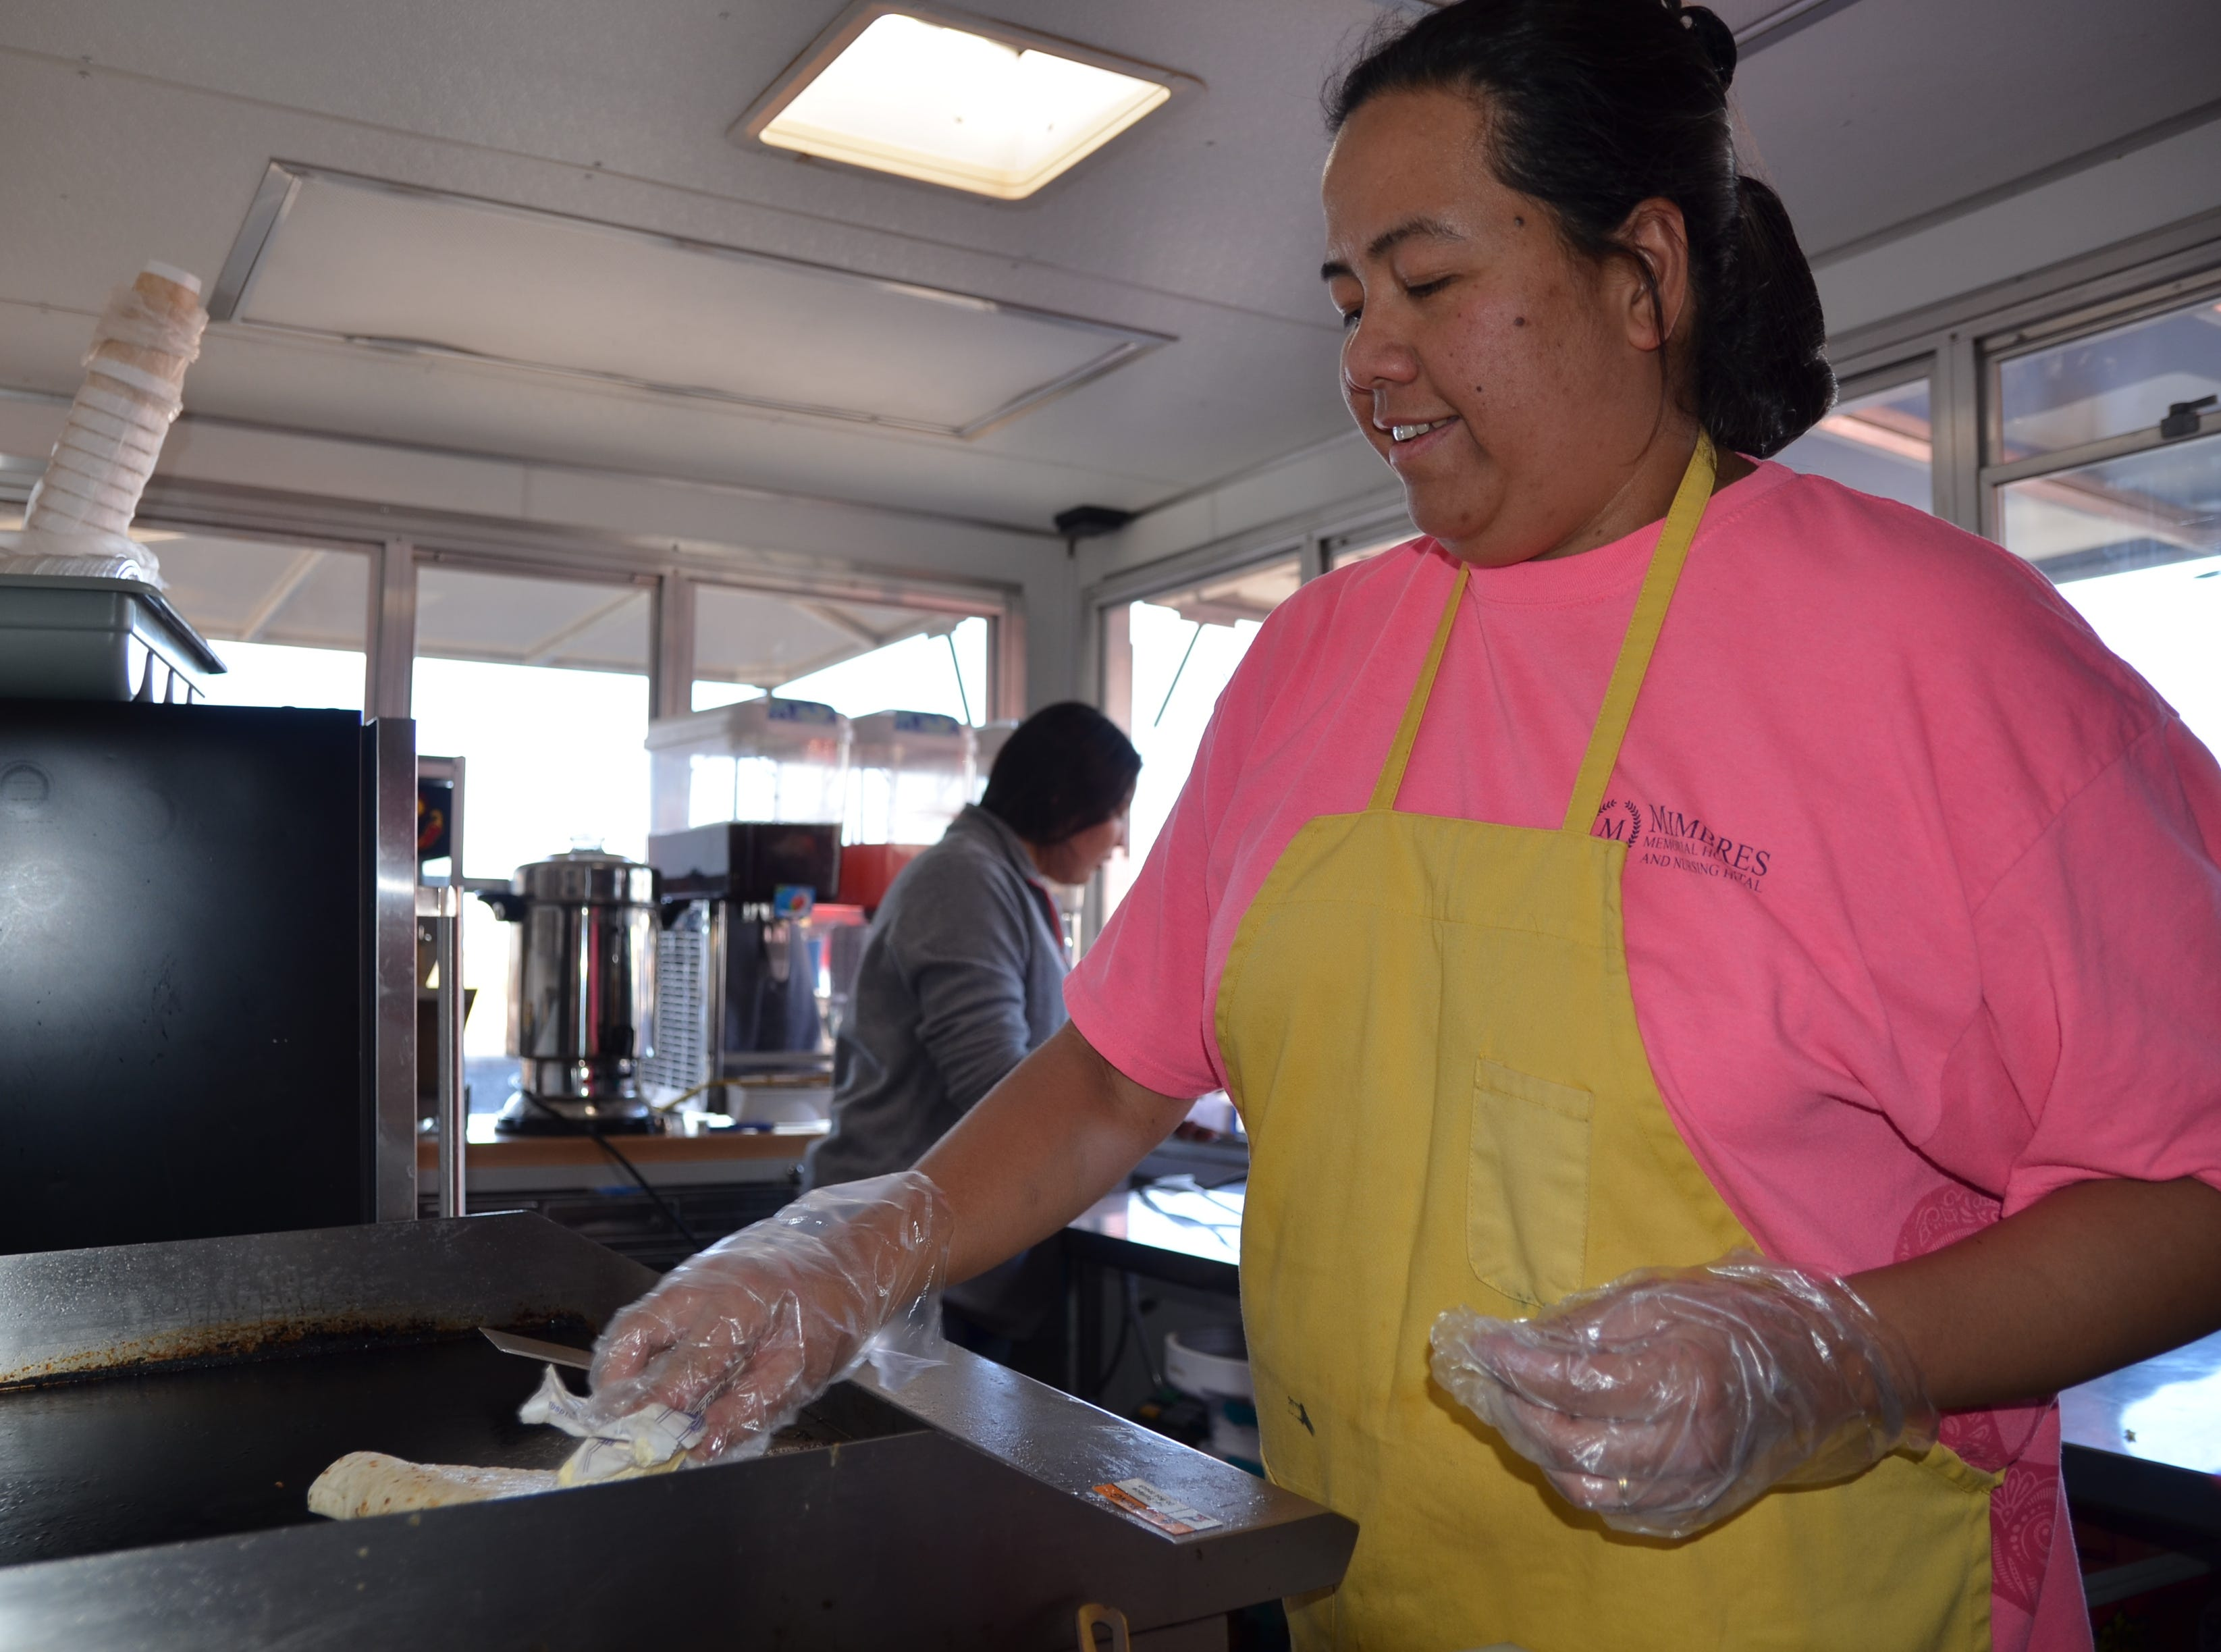 Racquel Mendoza of End of the Trail food truck preps a quesadilla on the comal for a customer to enjoy.